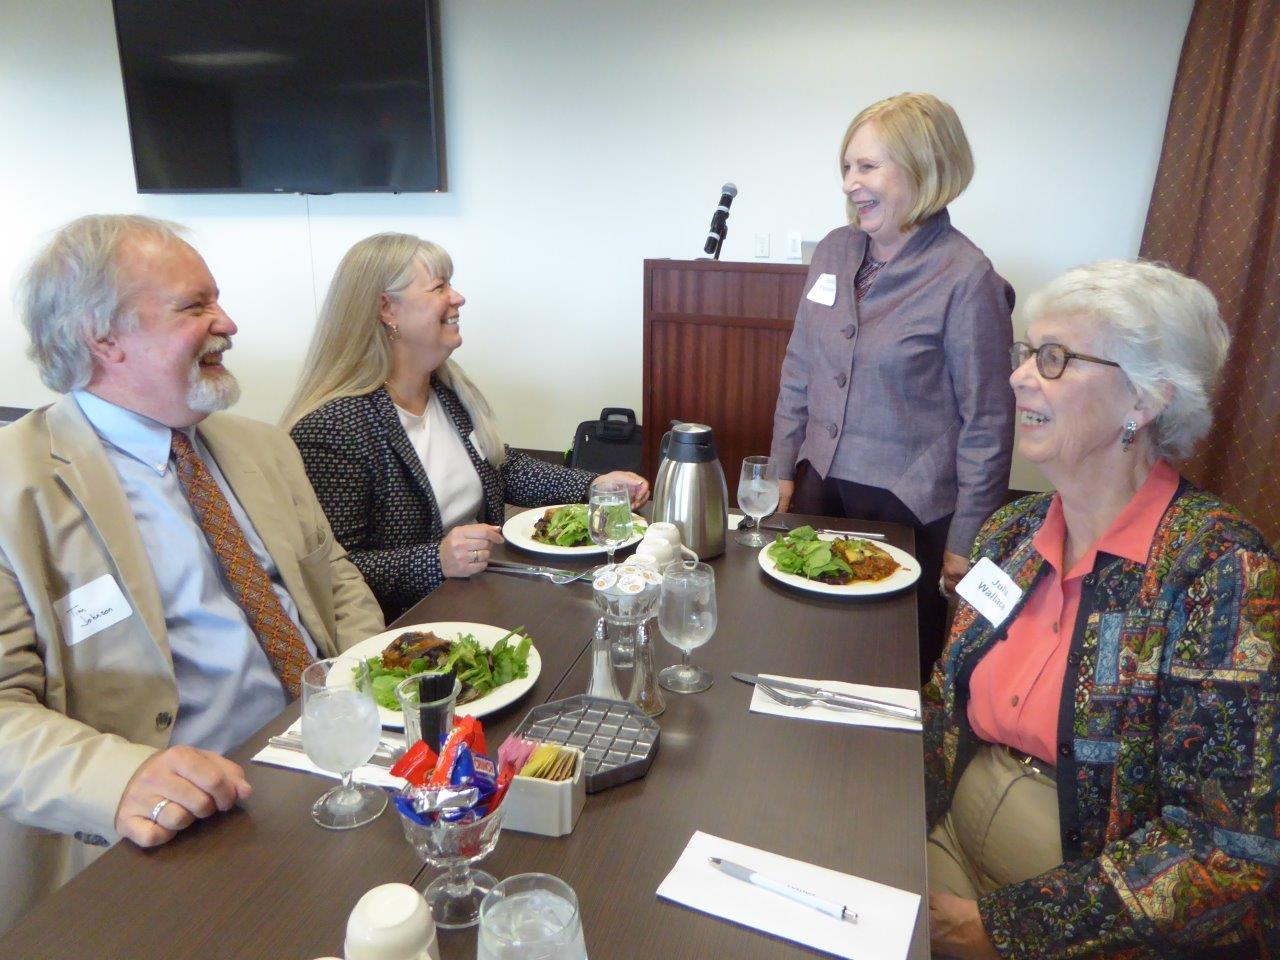 Past President Donna Peterson greets the Library contingent: Tim Johnson, Kris Keisling and Julia Wallace